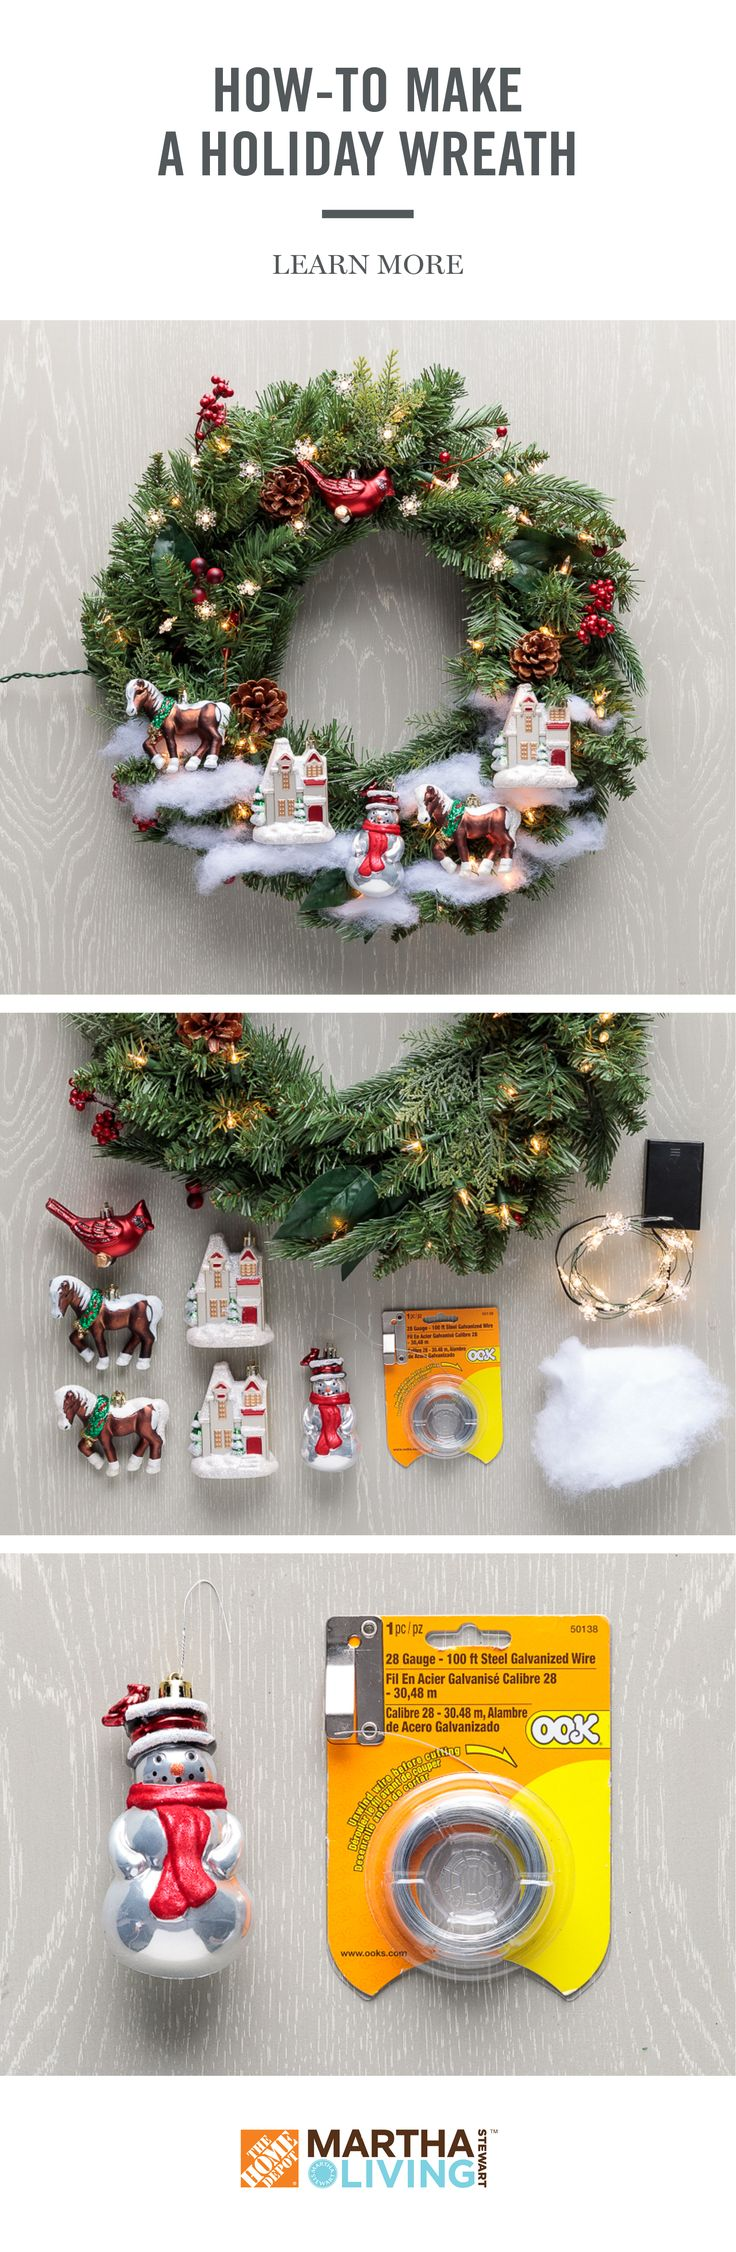 Get your home ready for holiday guests with this 3-step DIY project using the Martha Stewart Living holiday collection, available exclusive at The Home Depot.